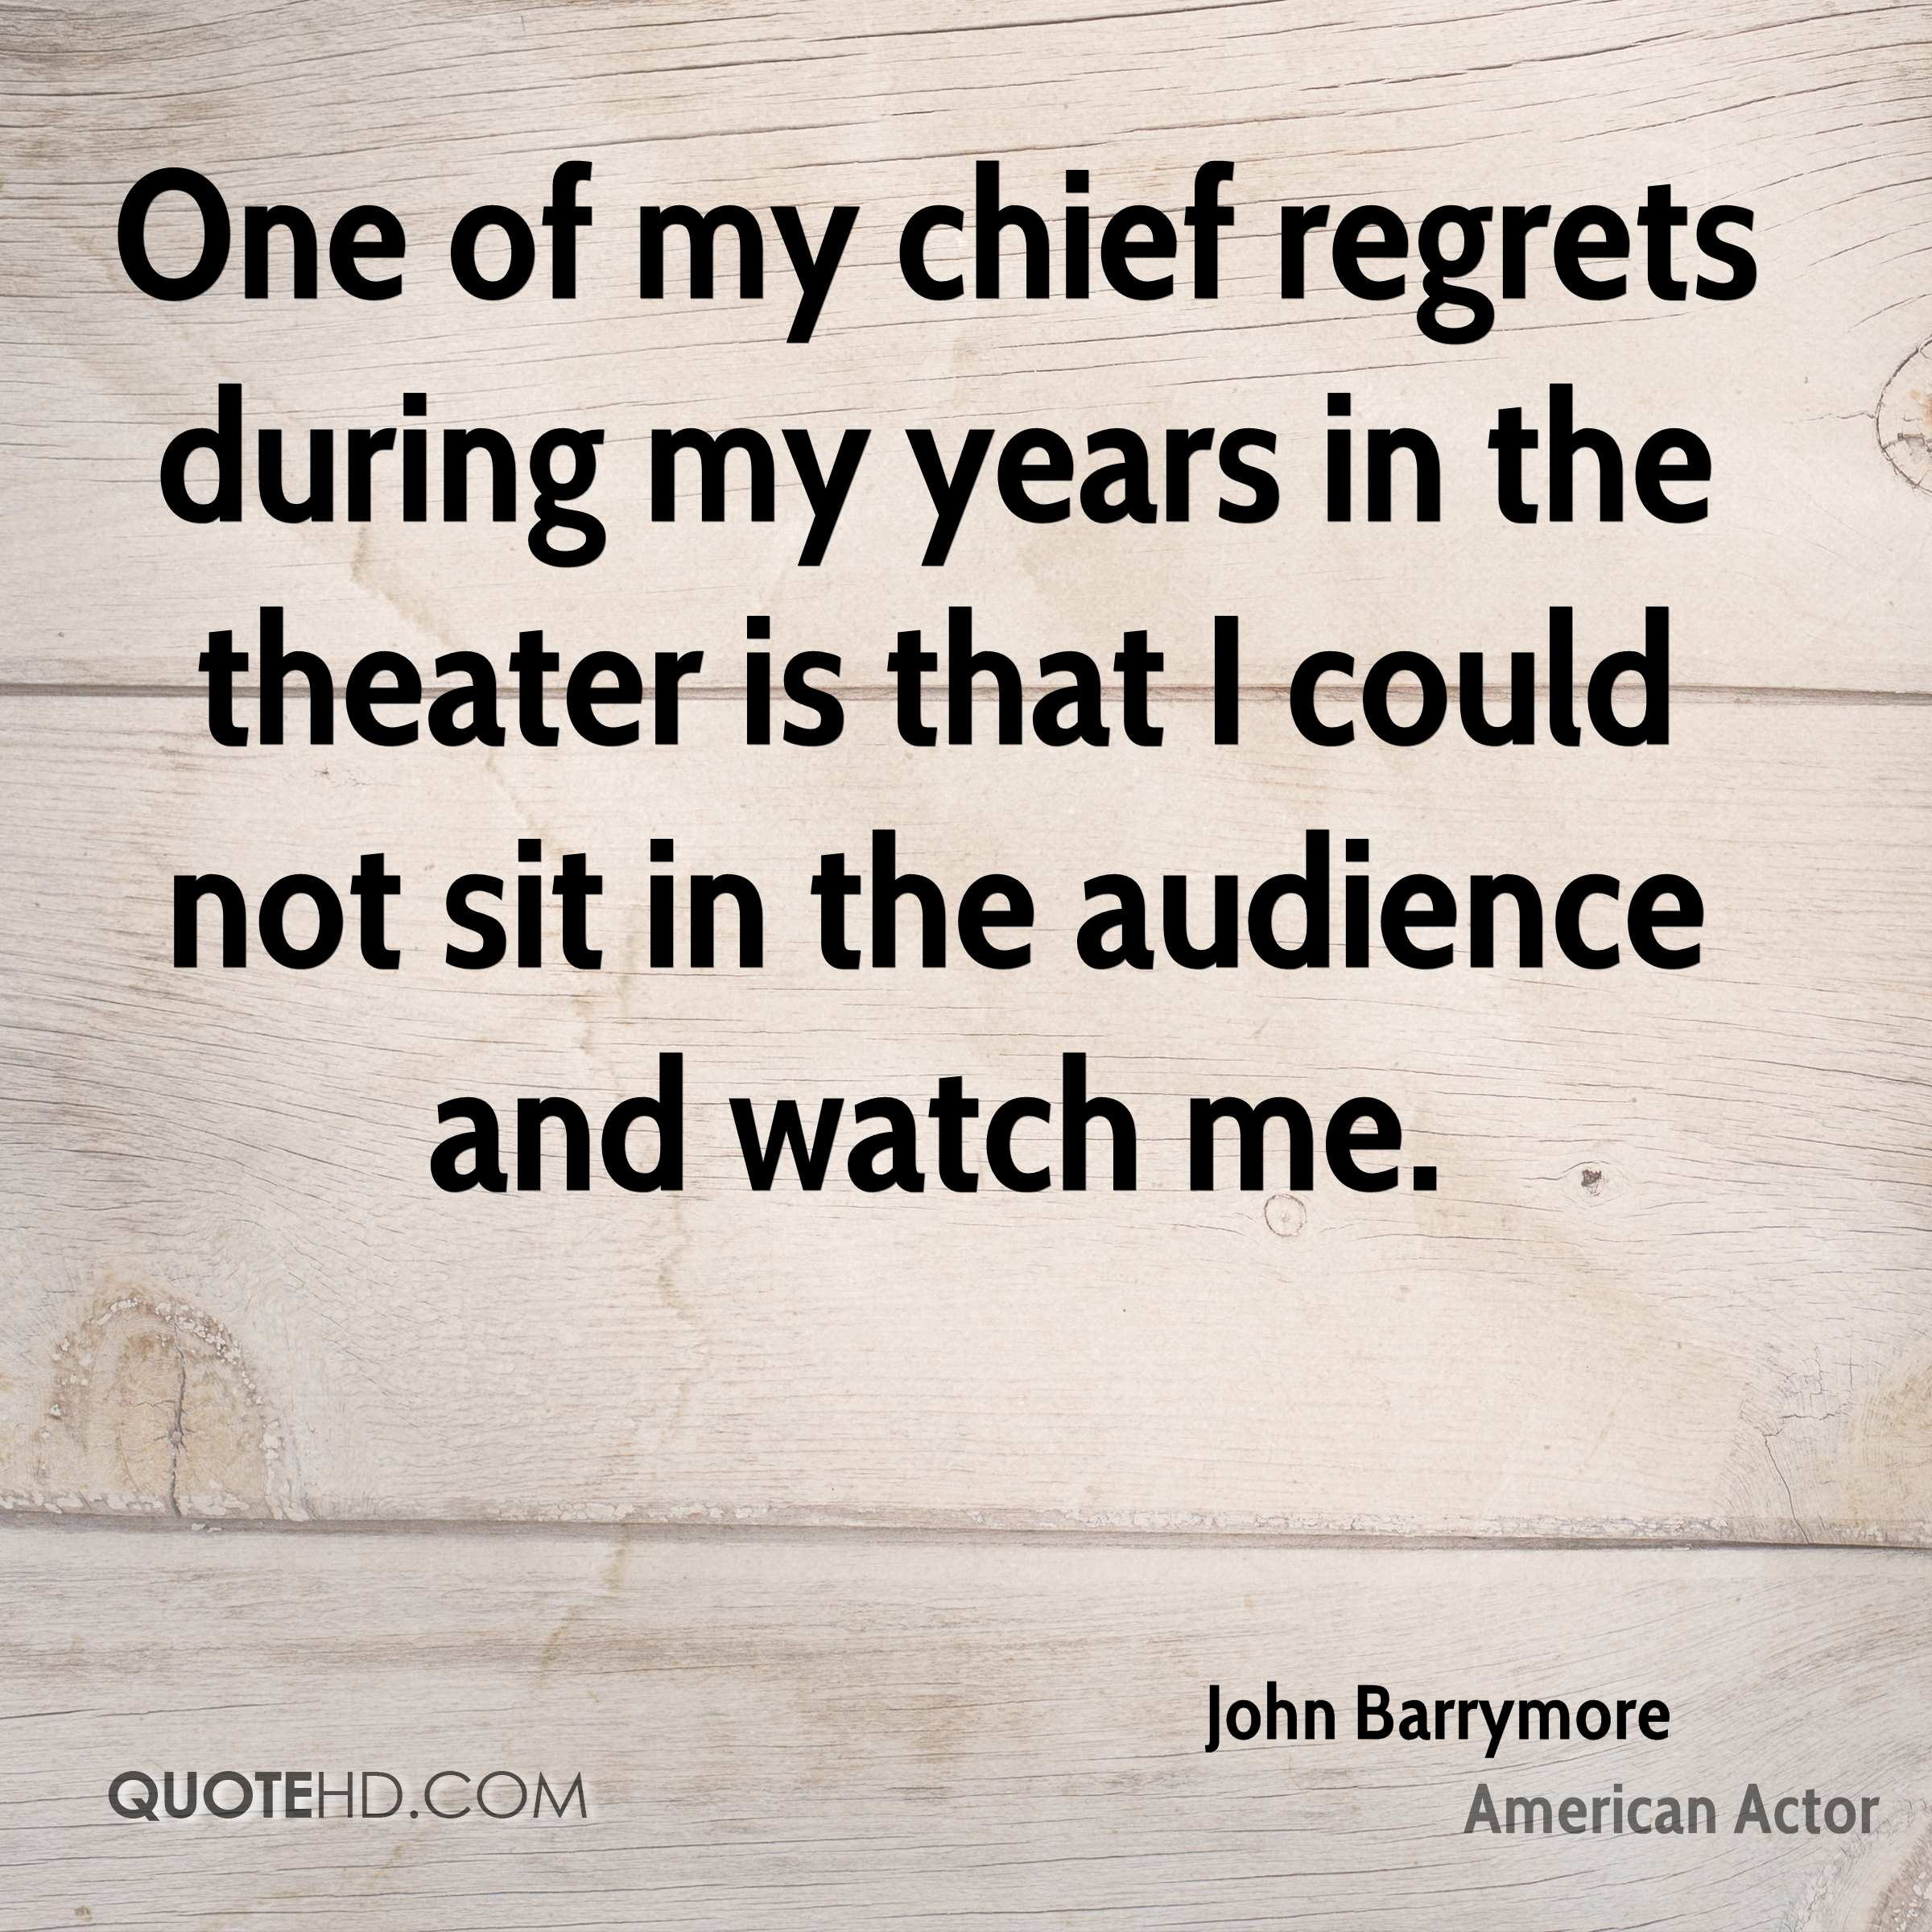 One of my chief regrets during my years in the theater is that I could not sit in the audience and watch me.